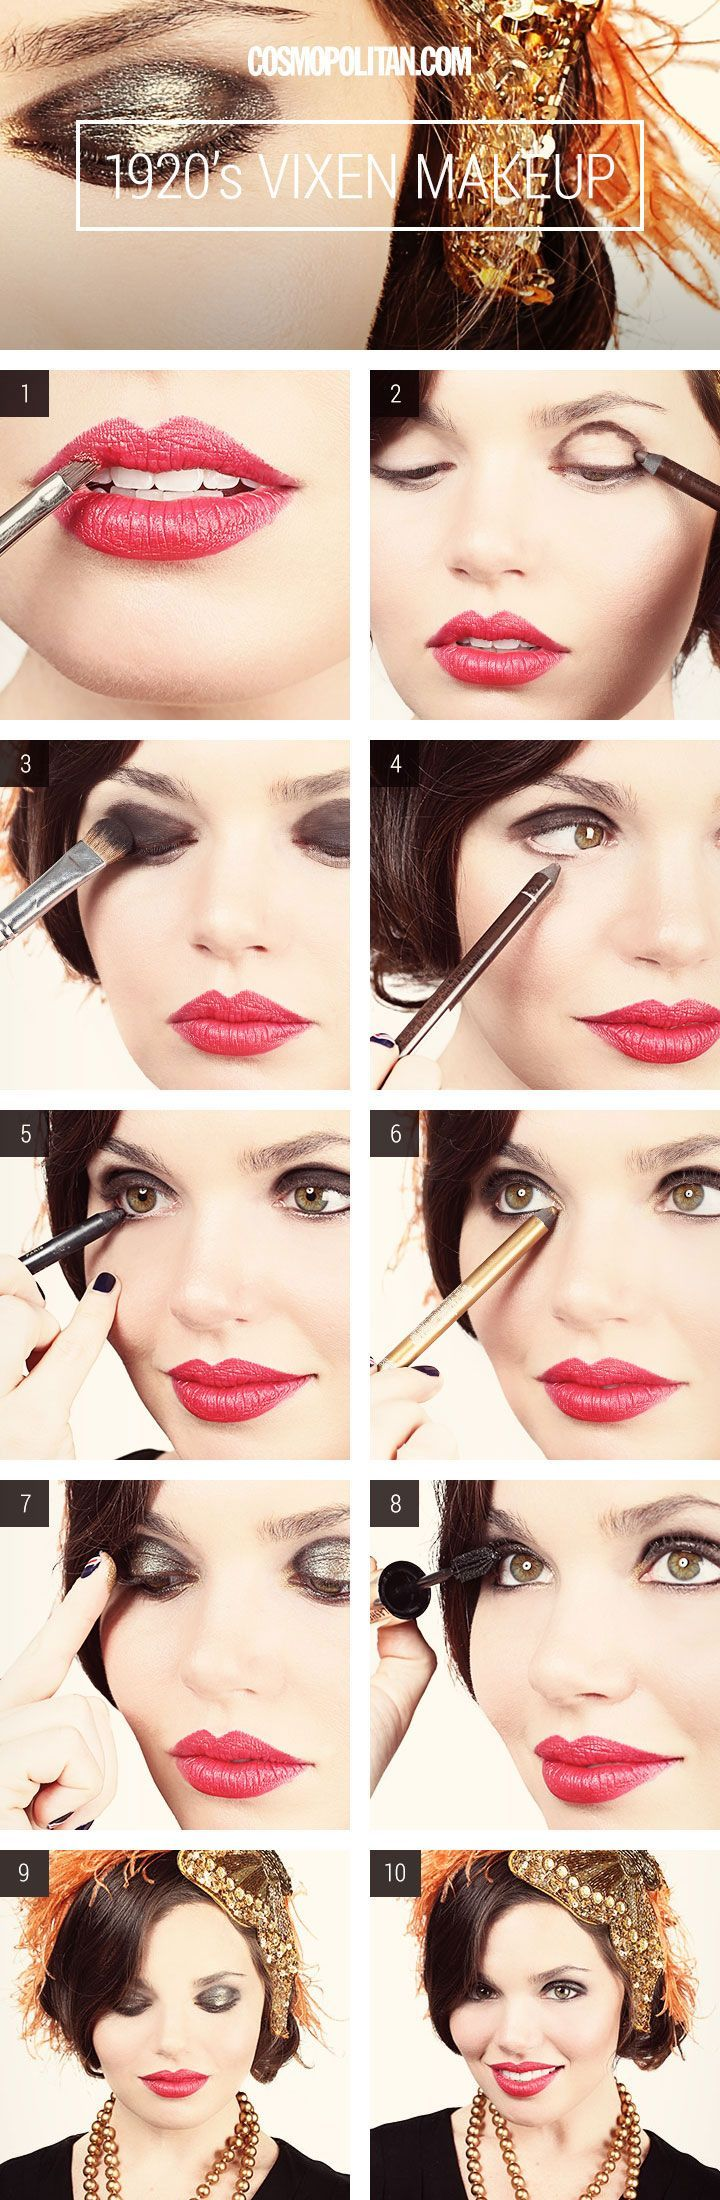 Flapper girl makeup how to for halloween flapper makeup tutorial flapper girl makeup how to for halloween flapper makeup tutorial baditri Image collections